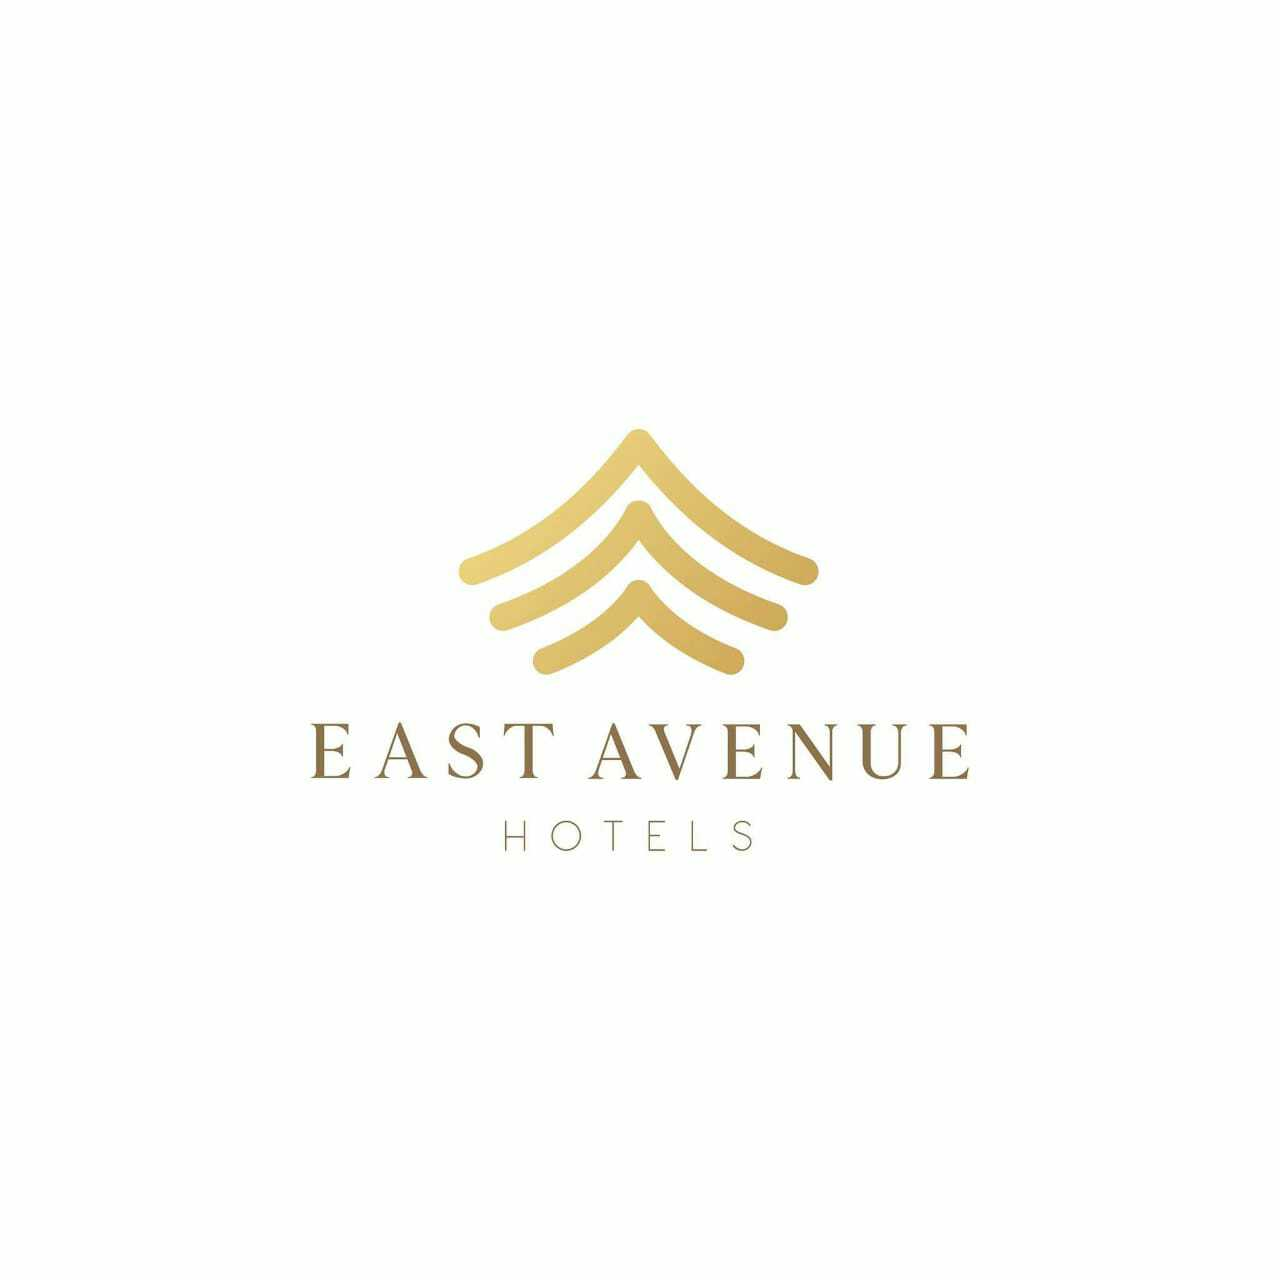 EAST AVENUE HOTELS (INDIA) PVT. LTD, 5 STAR HOTEL,  service in Nadakkavu, Kozhikode